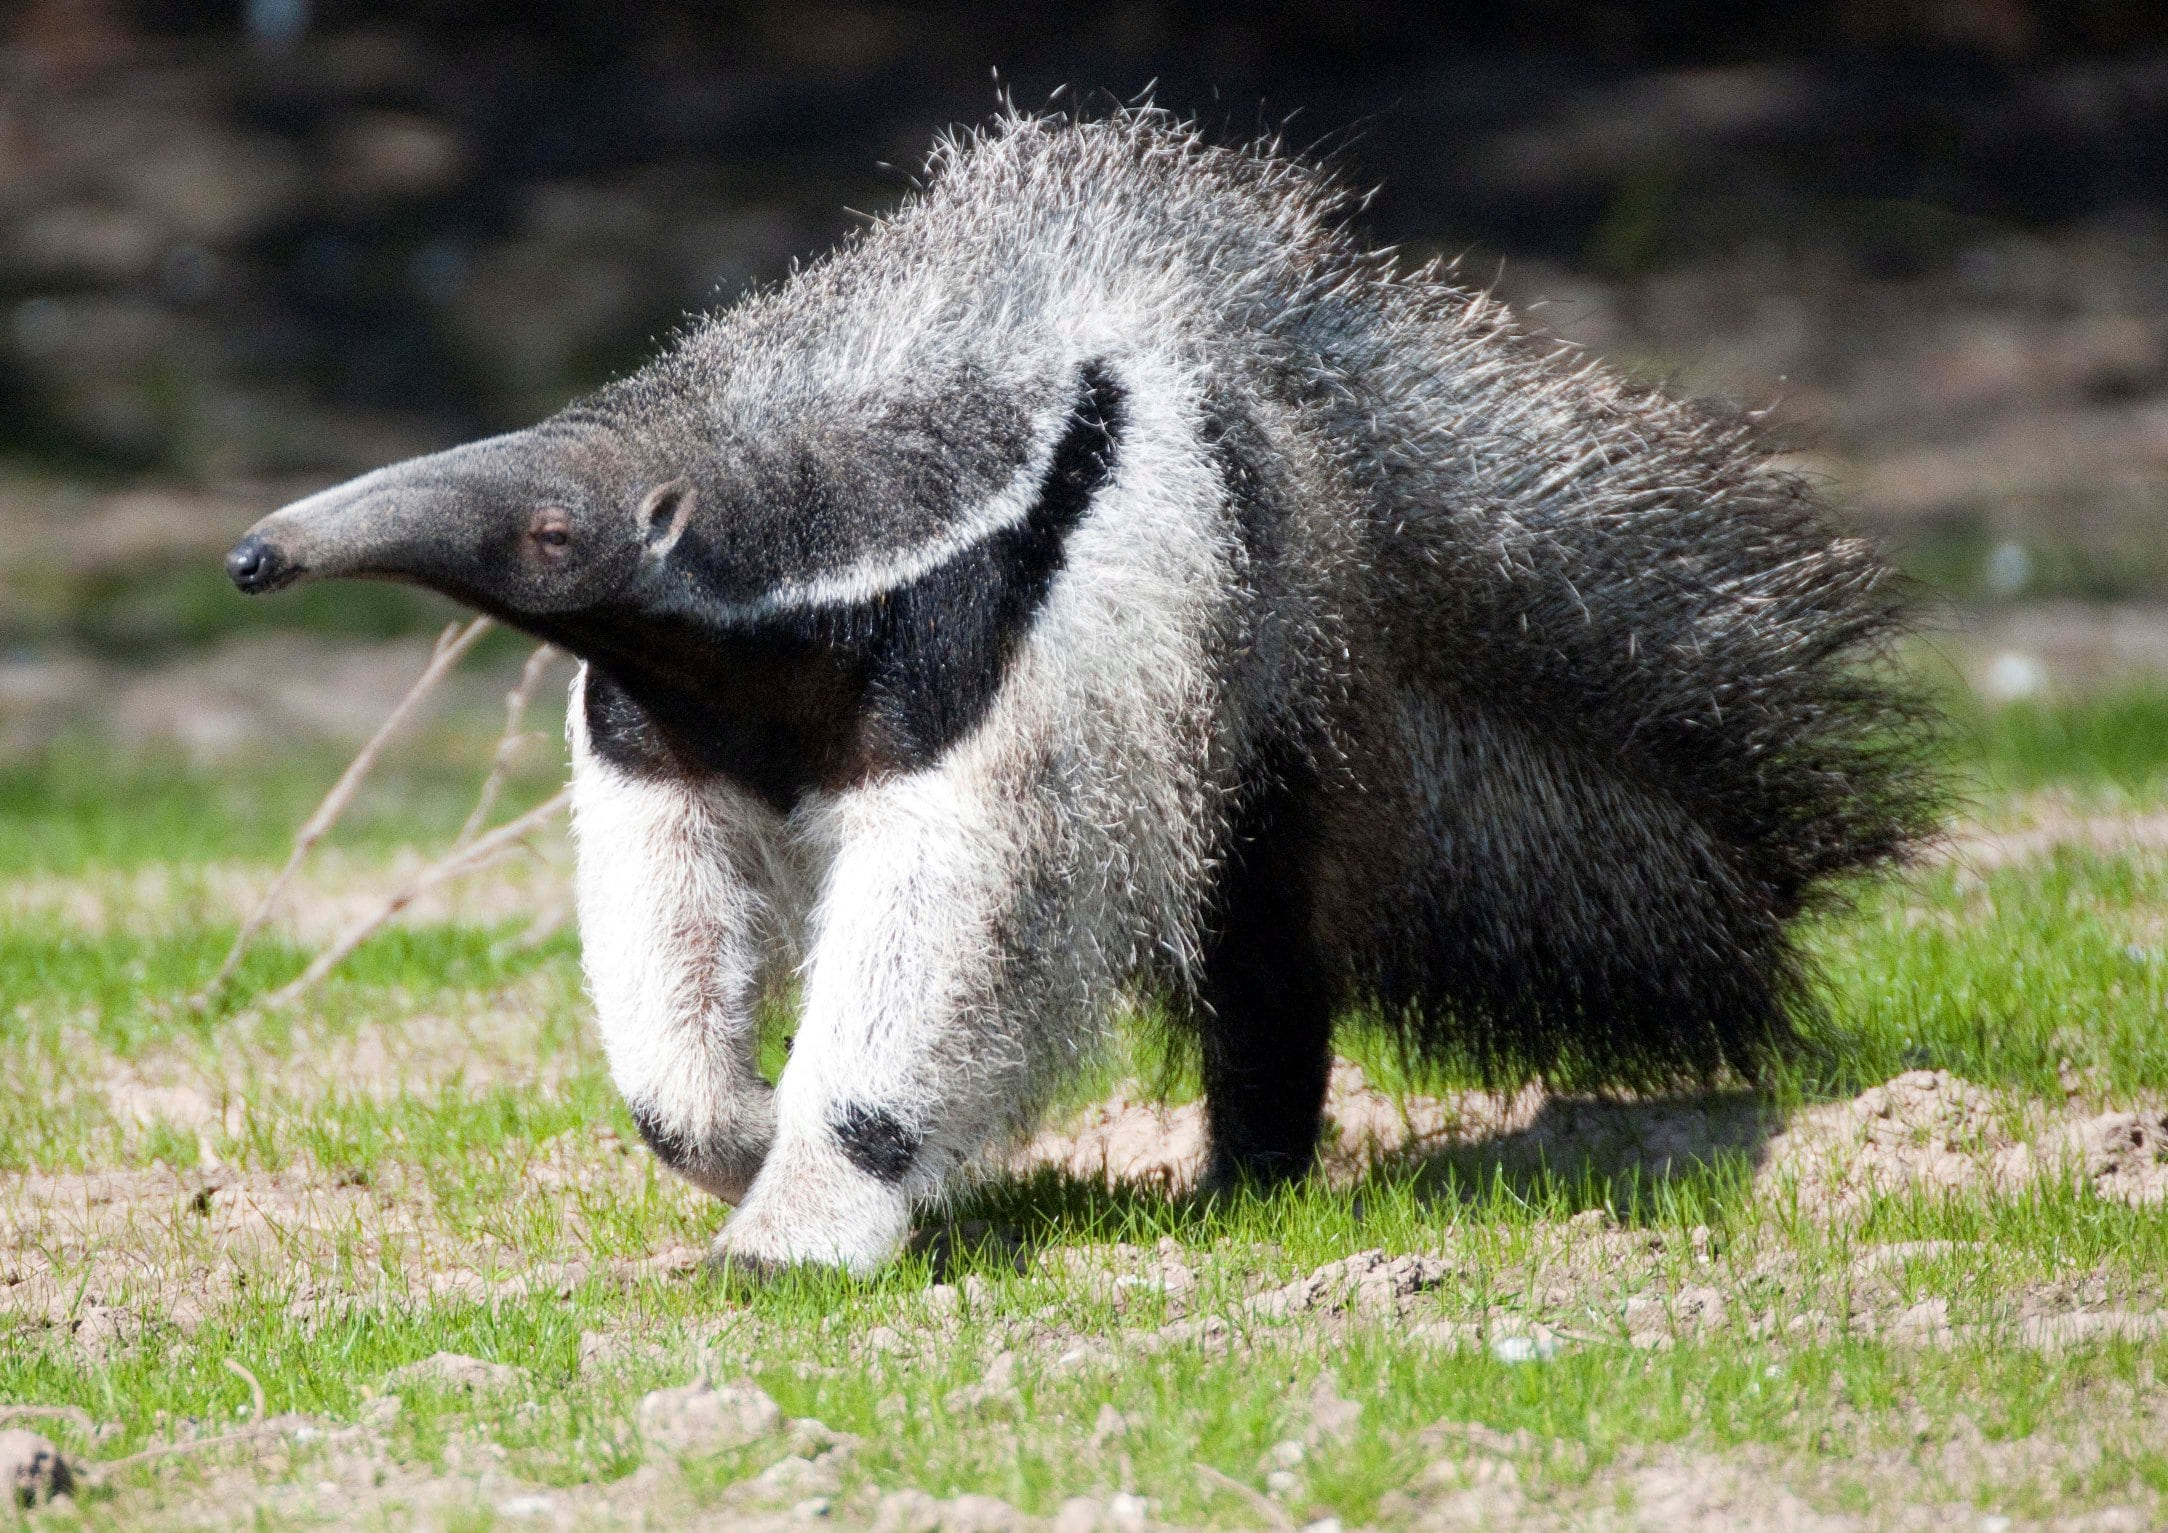 Ant-Eater widescreen for desktop